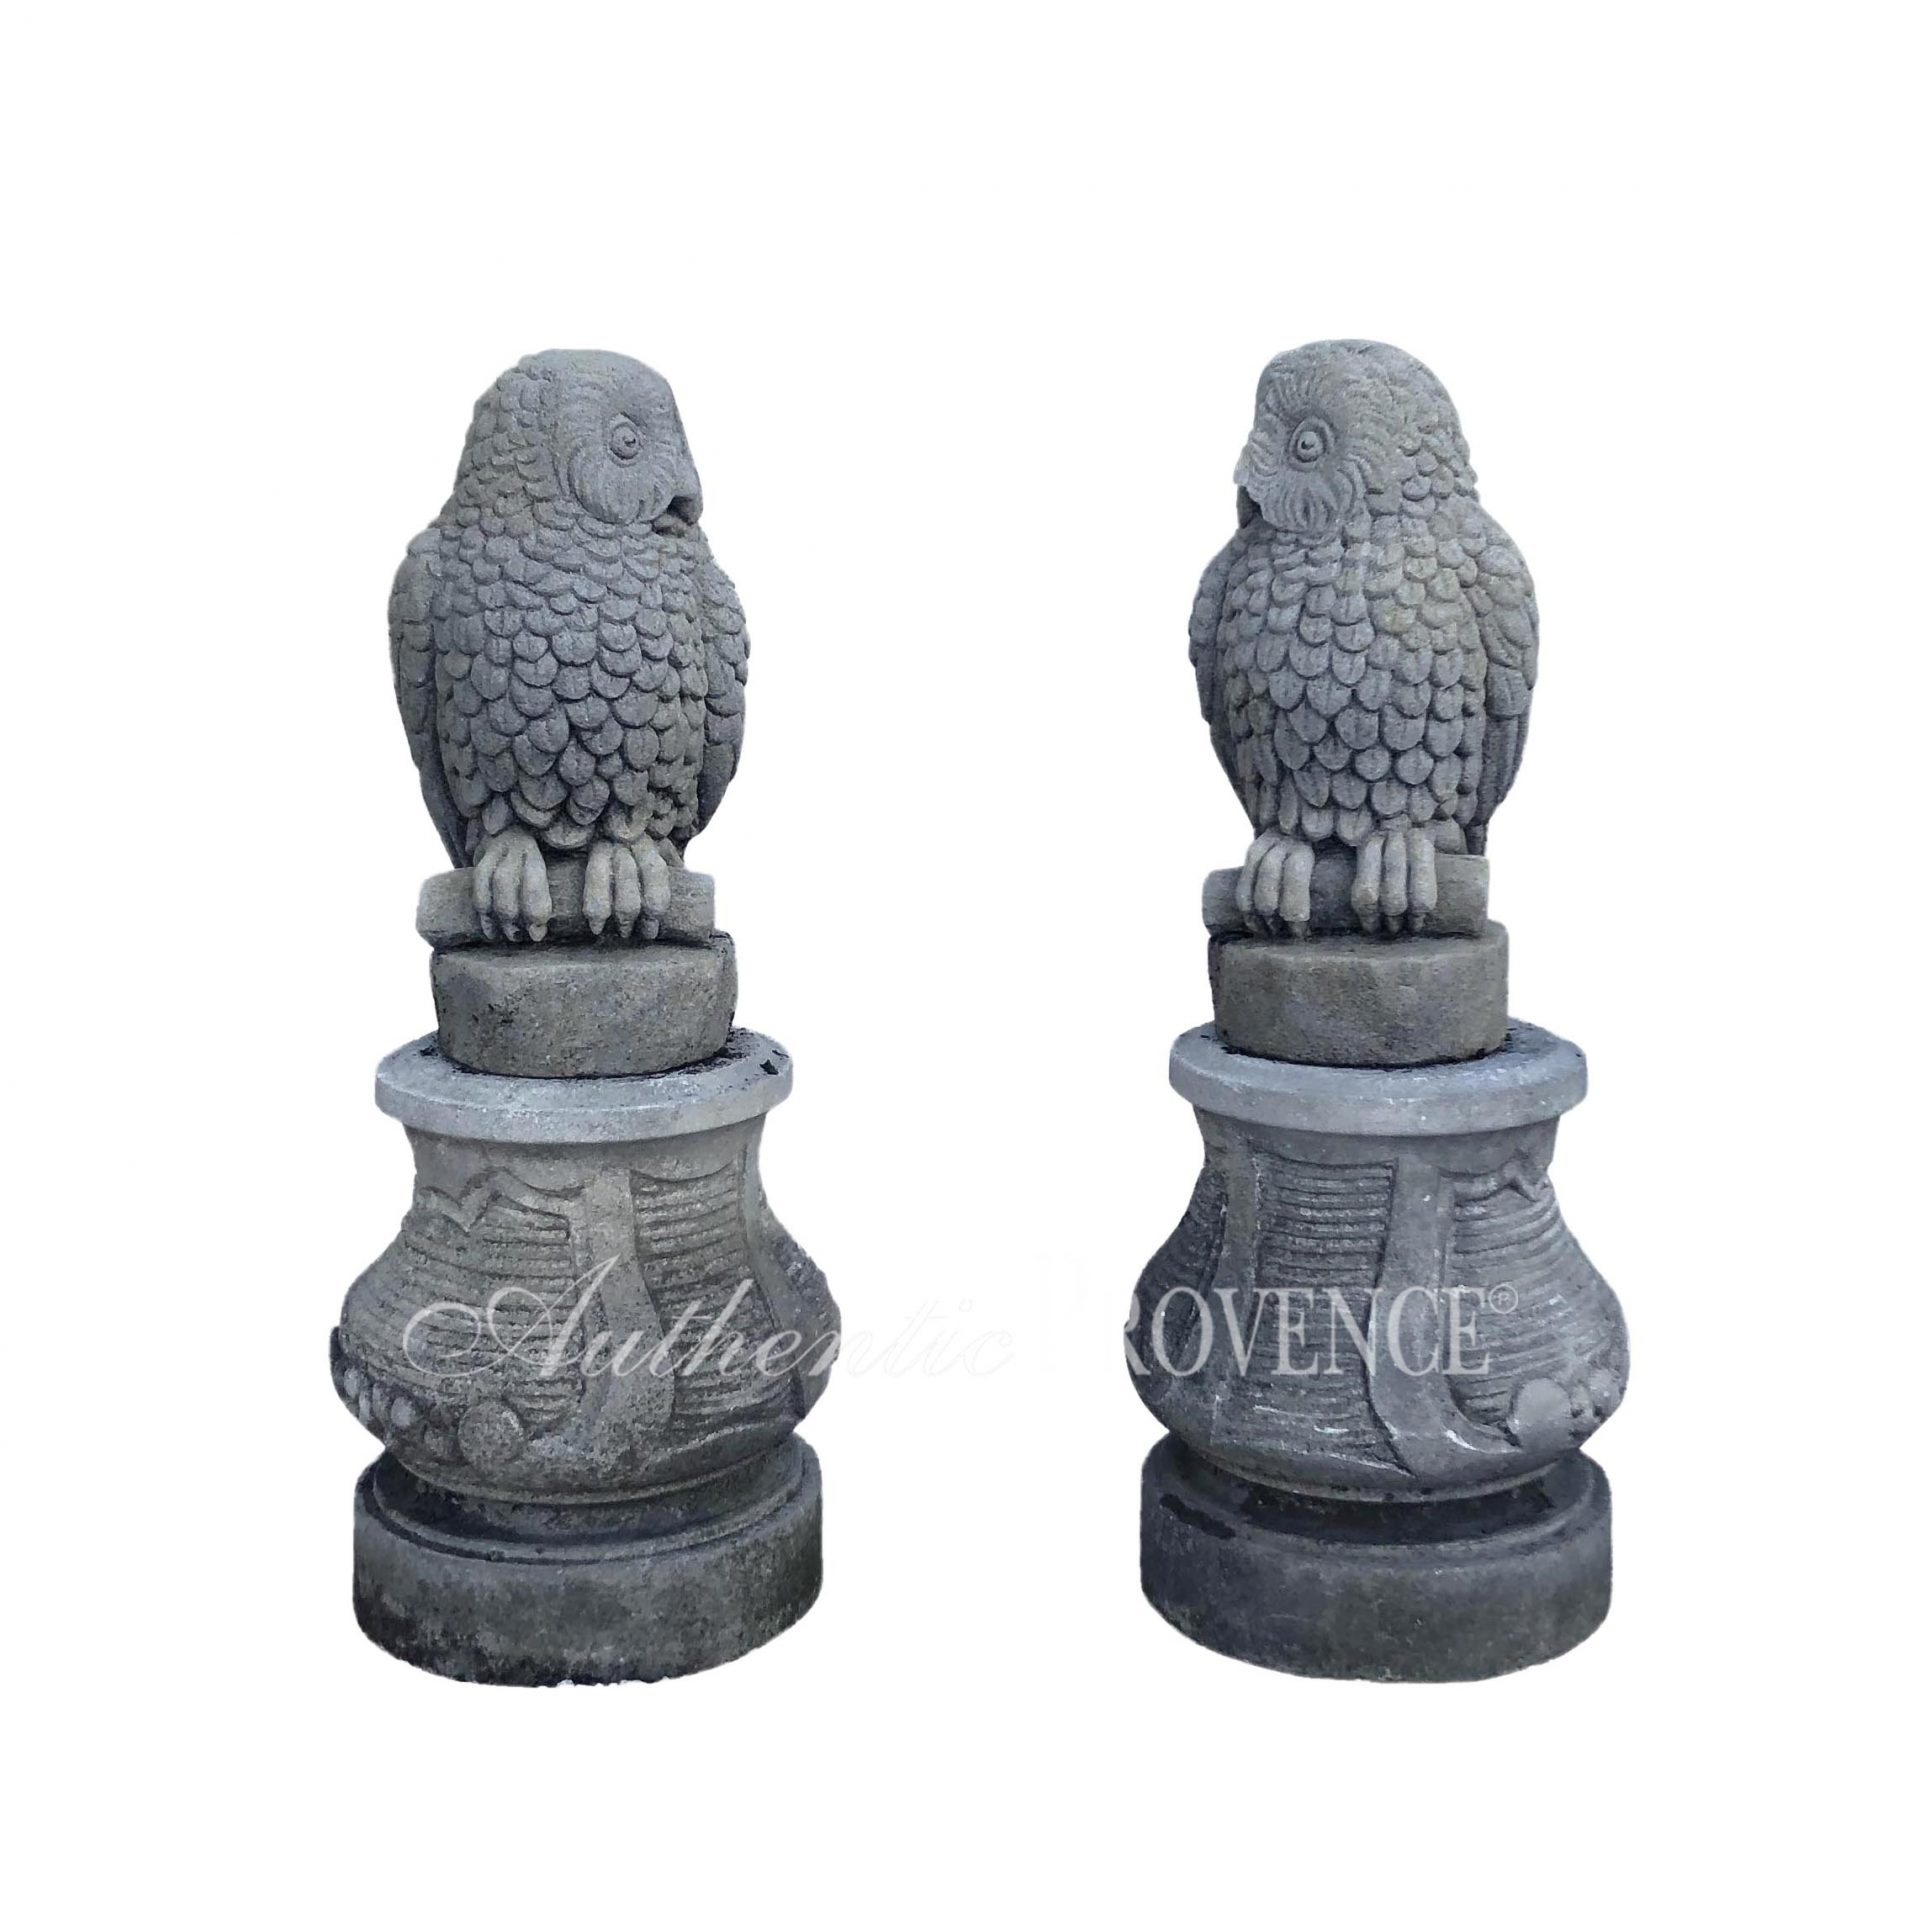 Pair of Limestone Owls